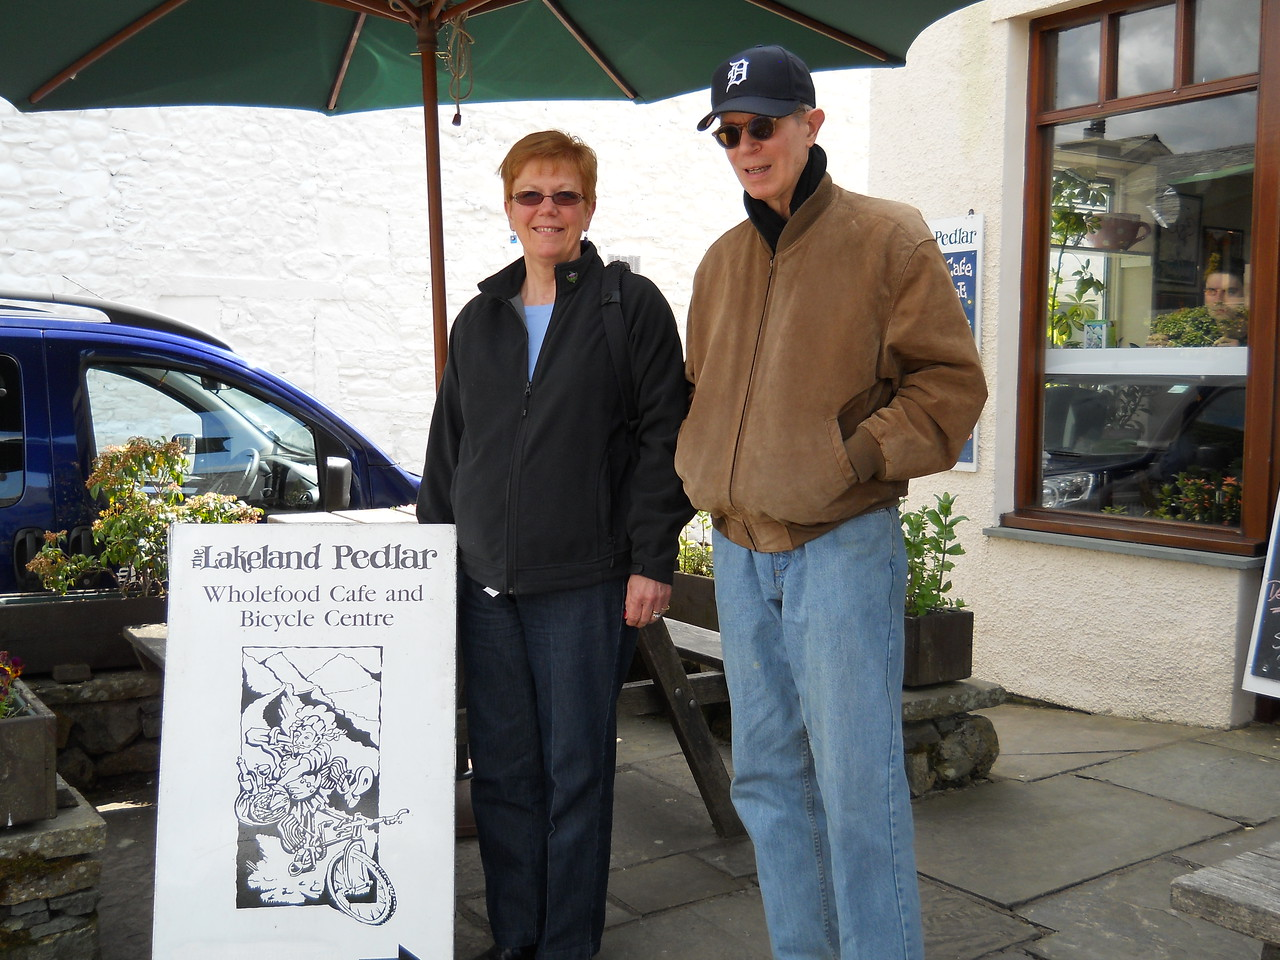 Our usual place for lunch was closed, so Bob took us to The Lakeland Pedlar - the food was very good